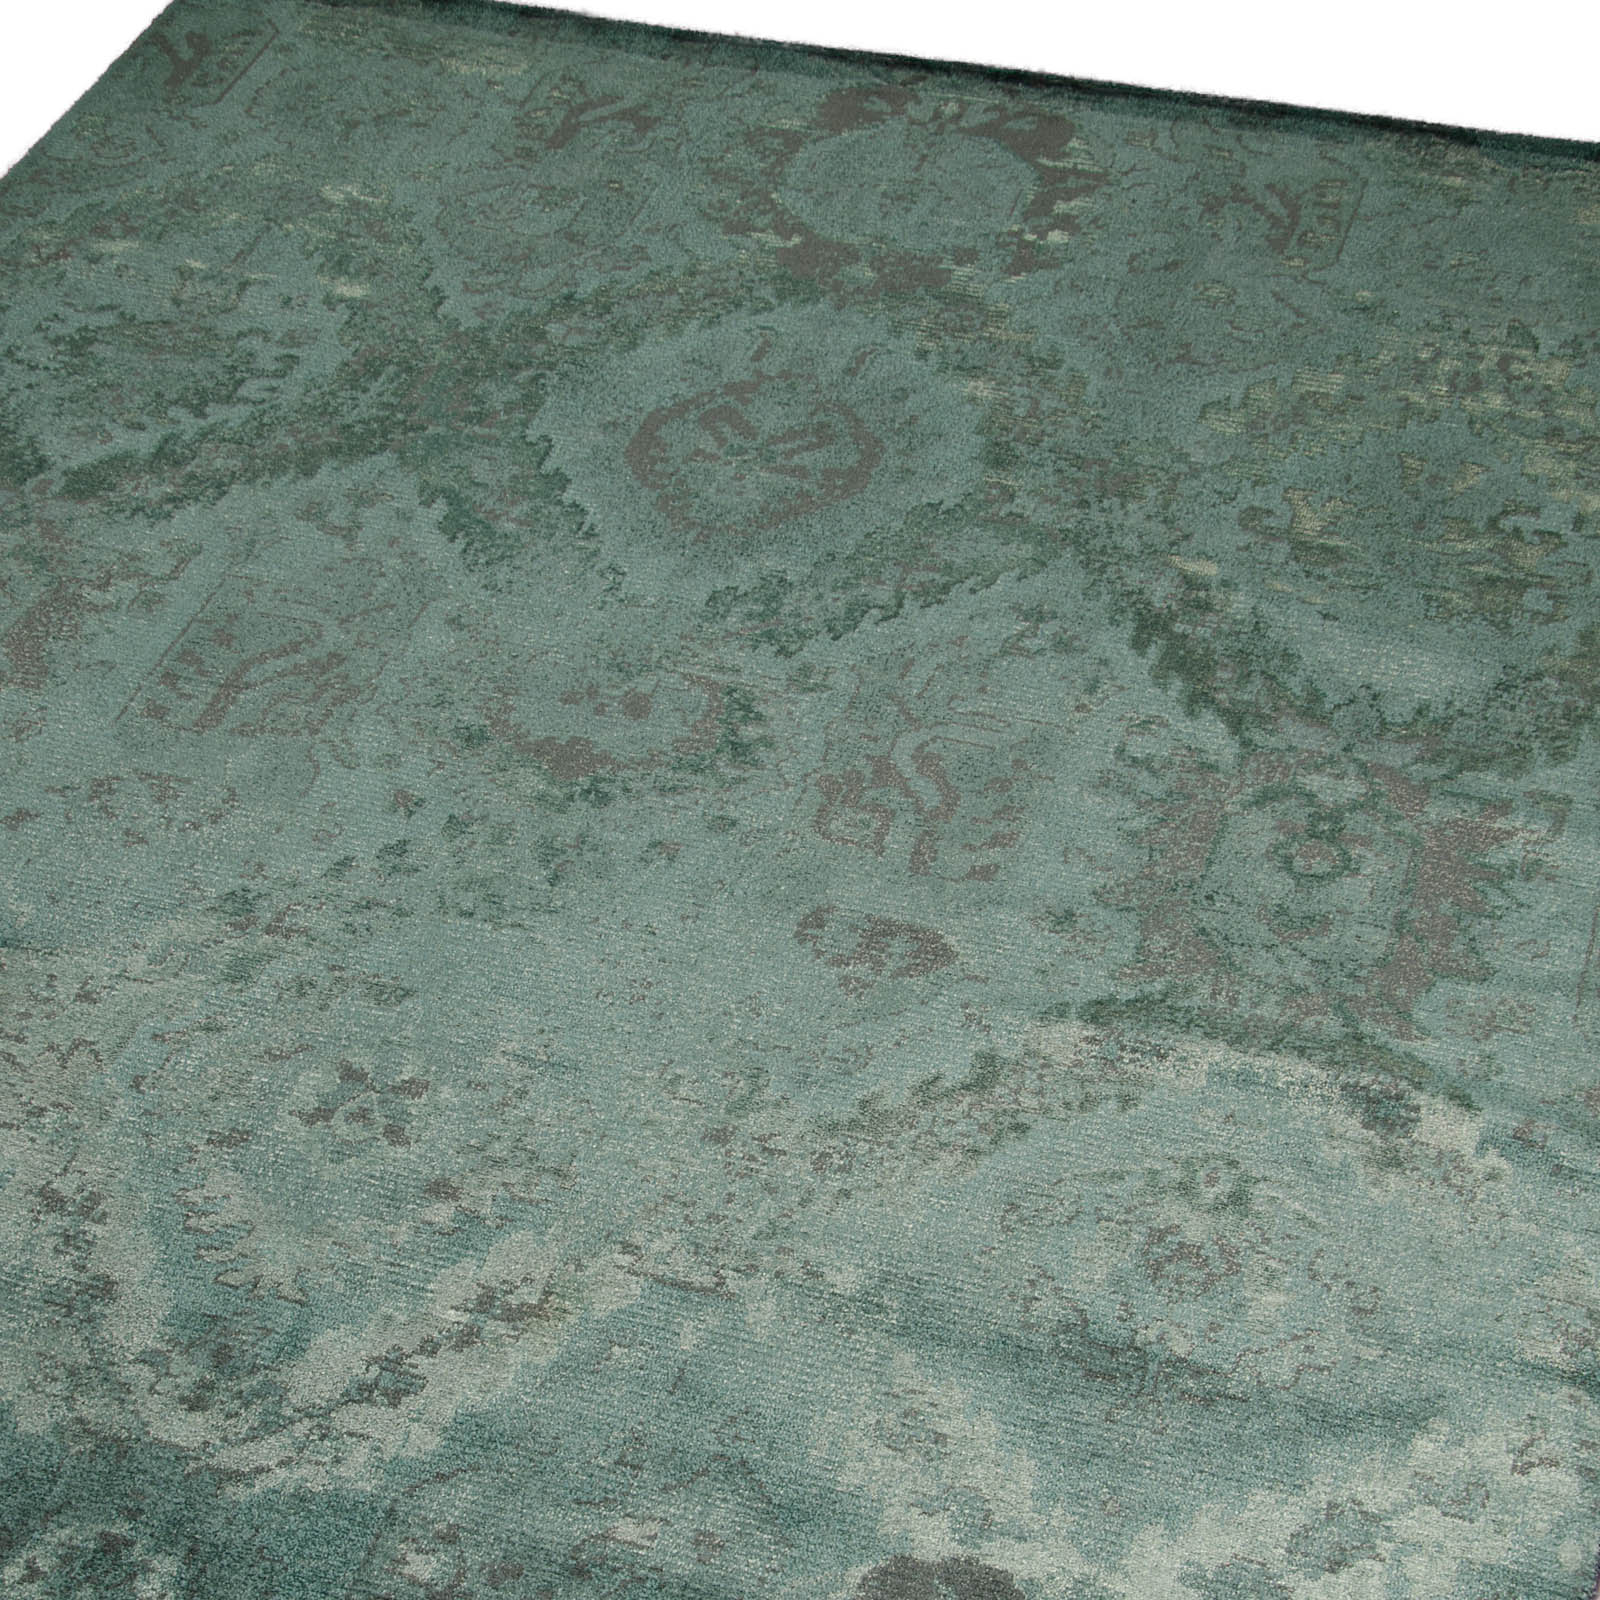 Nourison Nightfall Rugs NGT01 in Absinthe